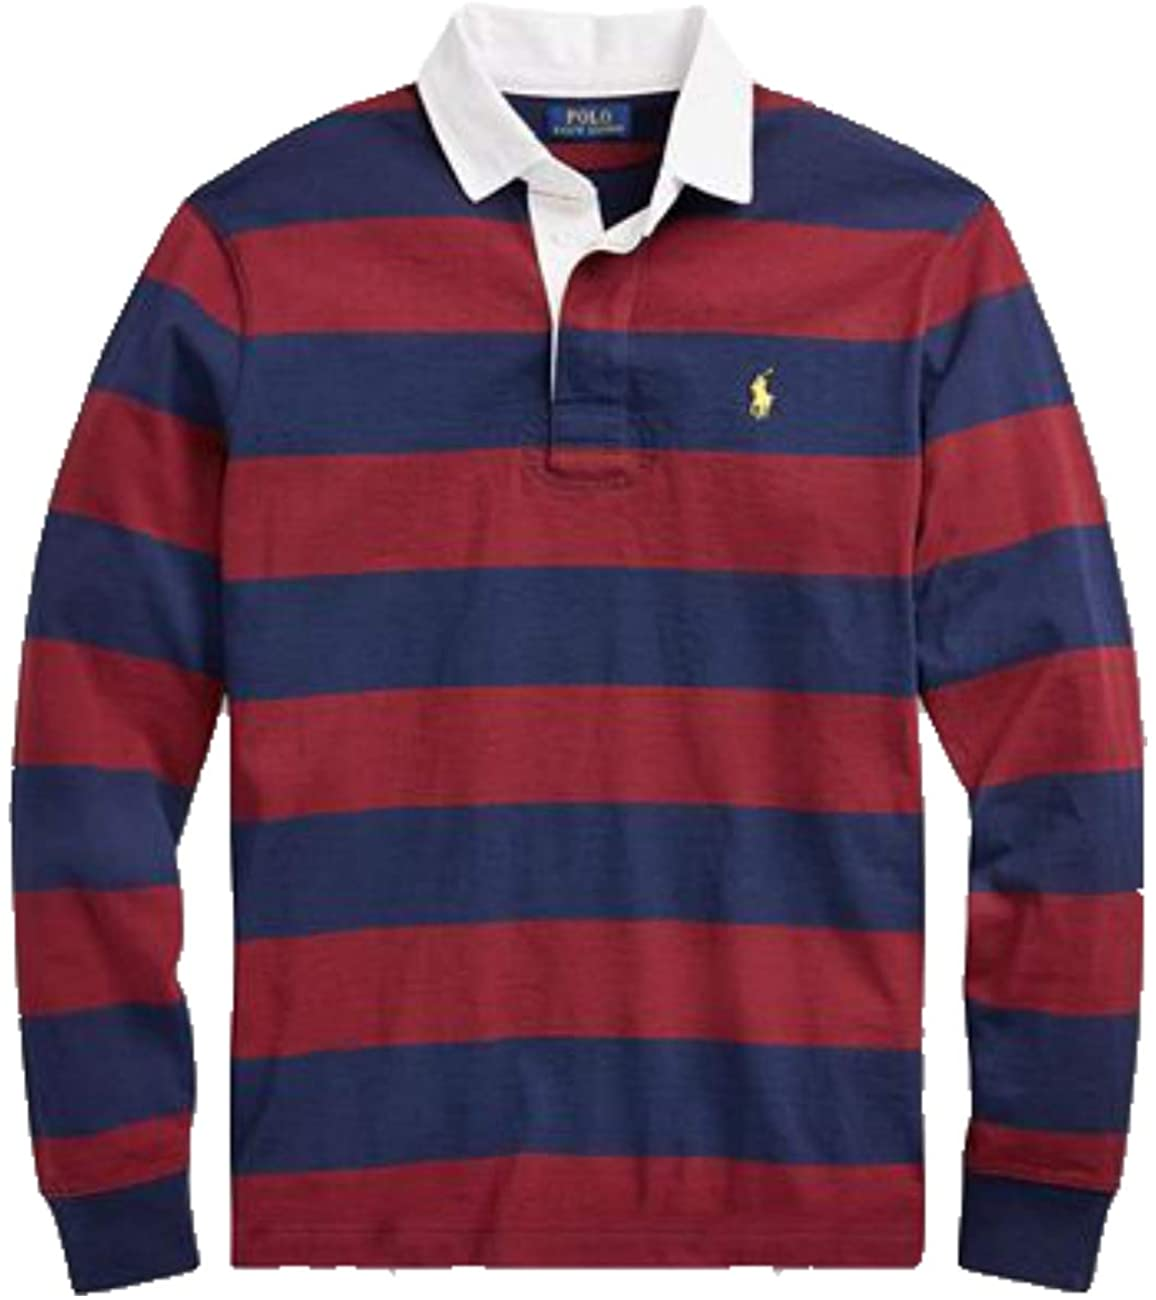 Ralph Lauren Polo Mens Big and Tall Long Sleeve Stripe Rugby Shirt